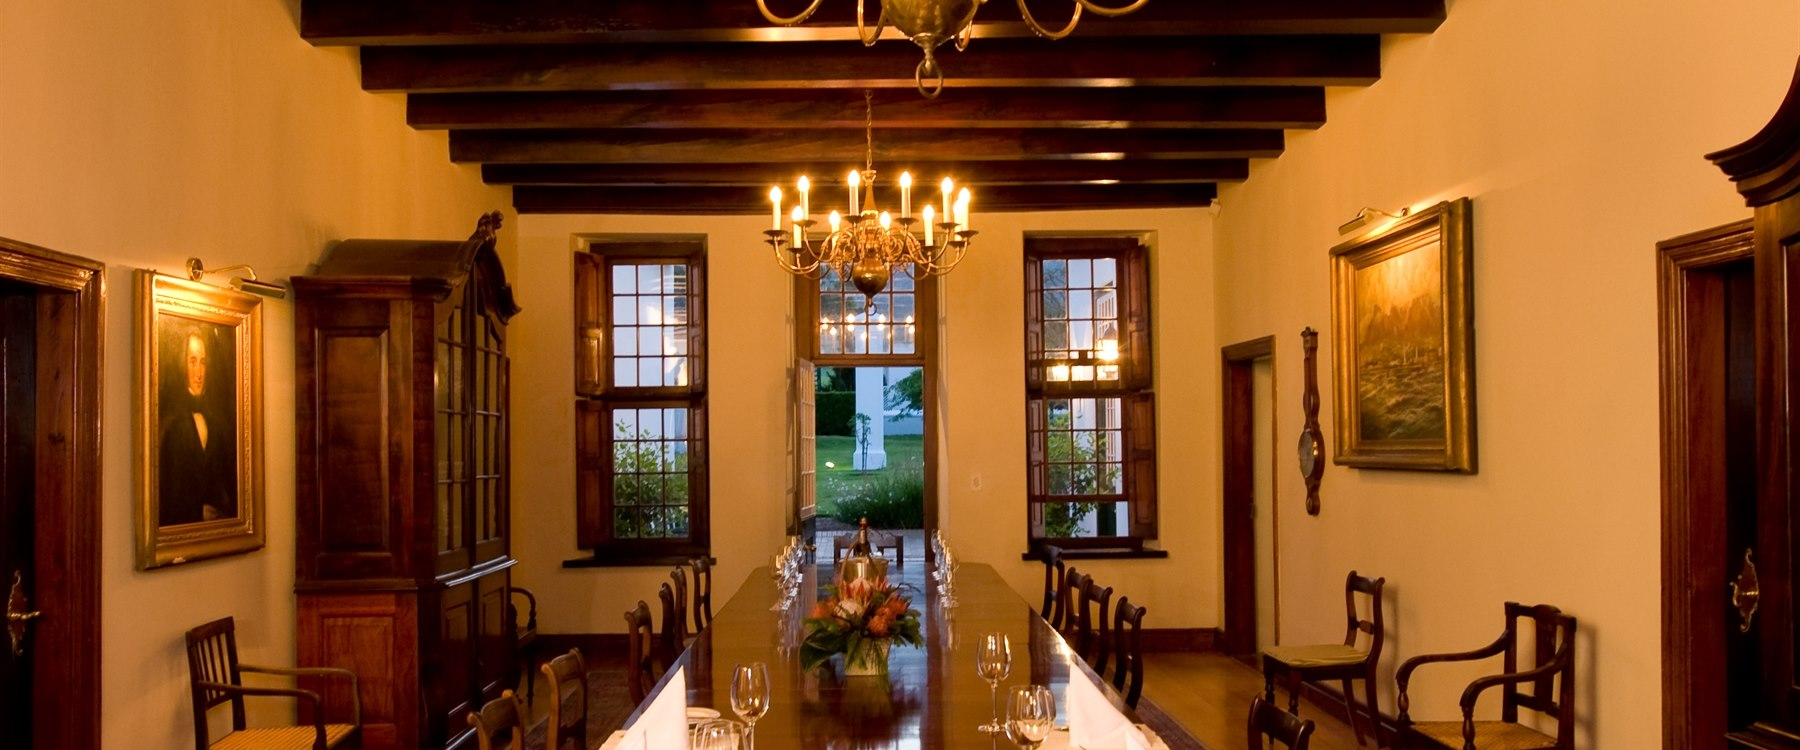 Manor house foyer at Steenberg Hotel